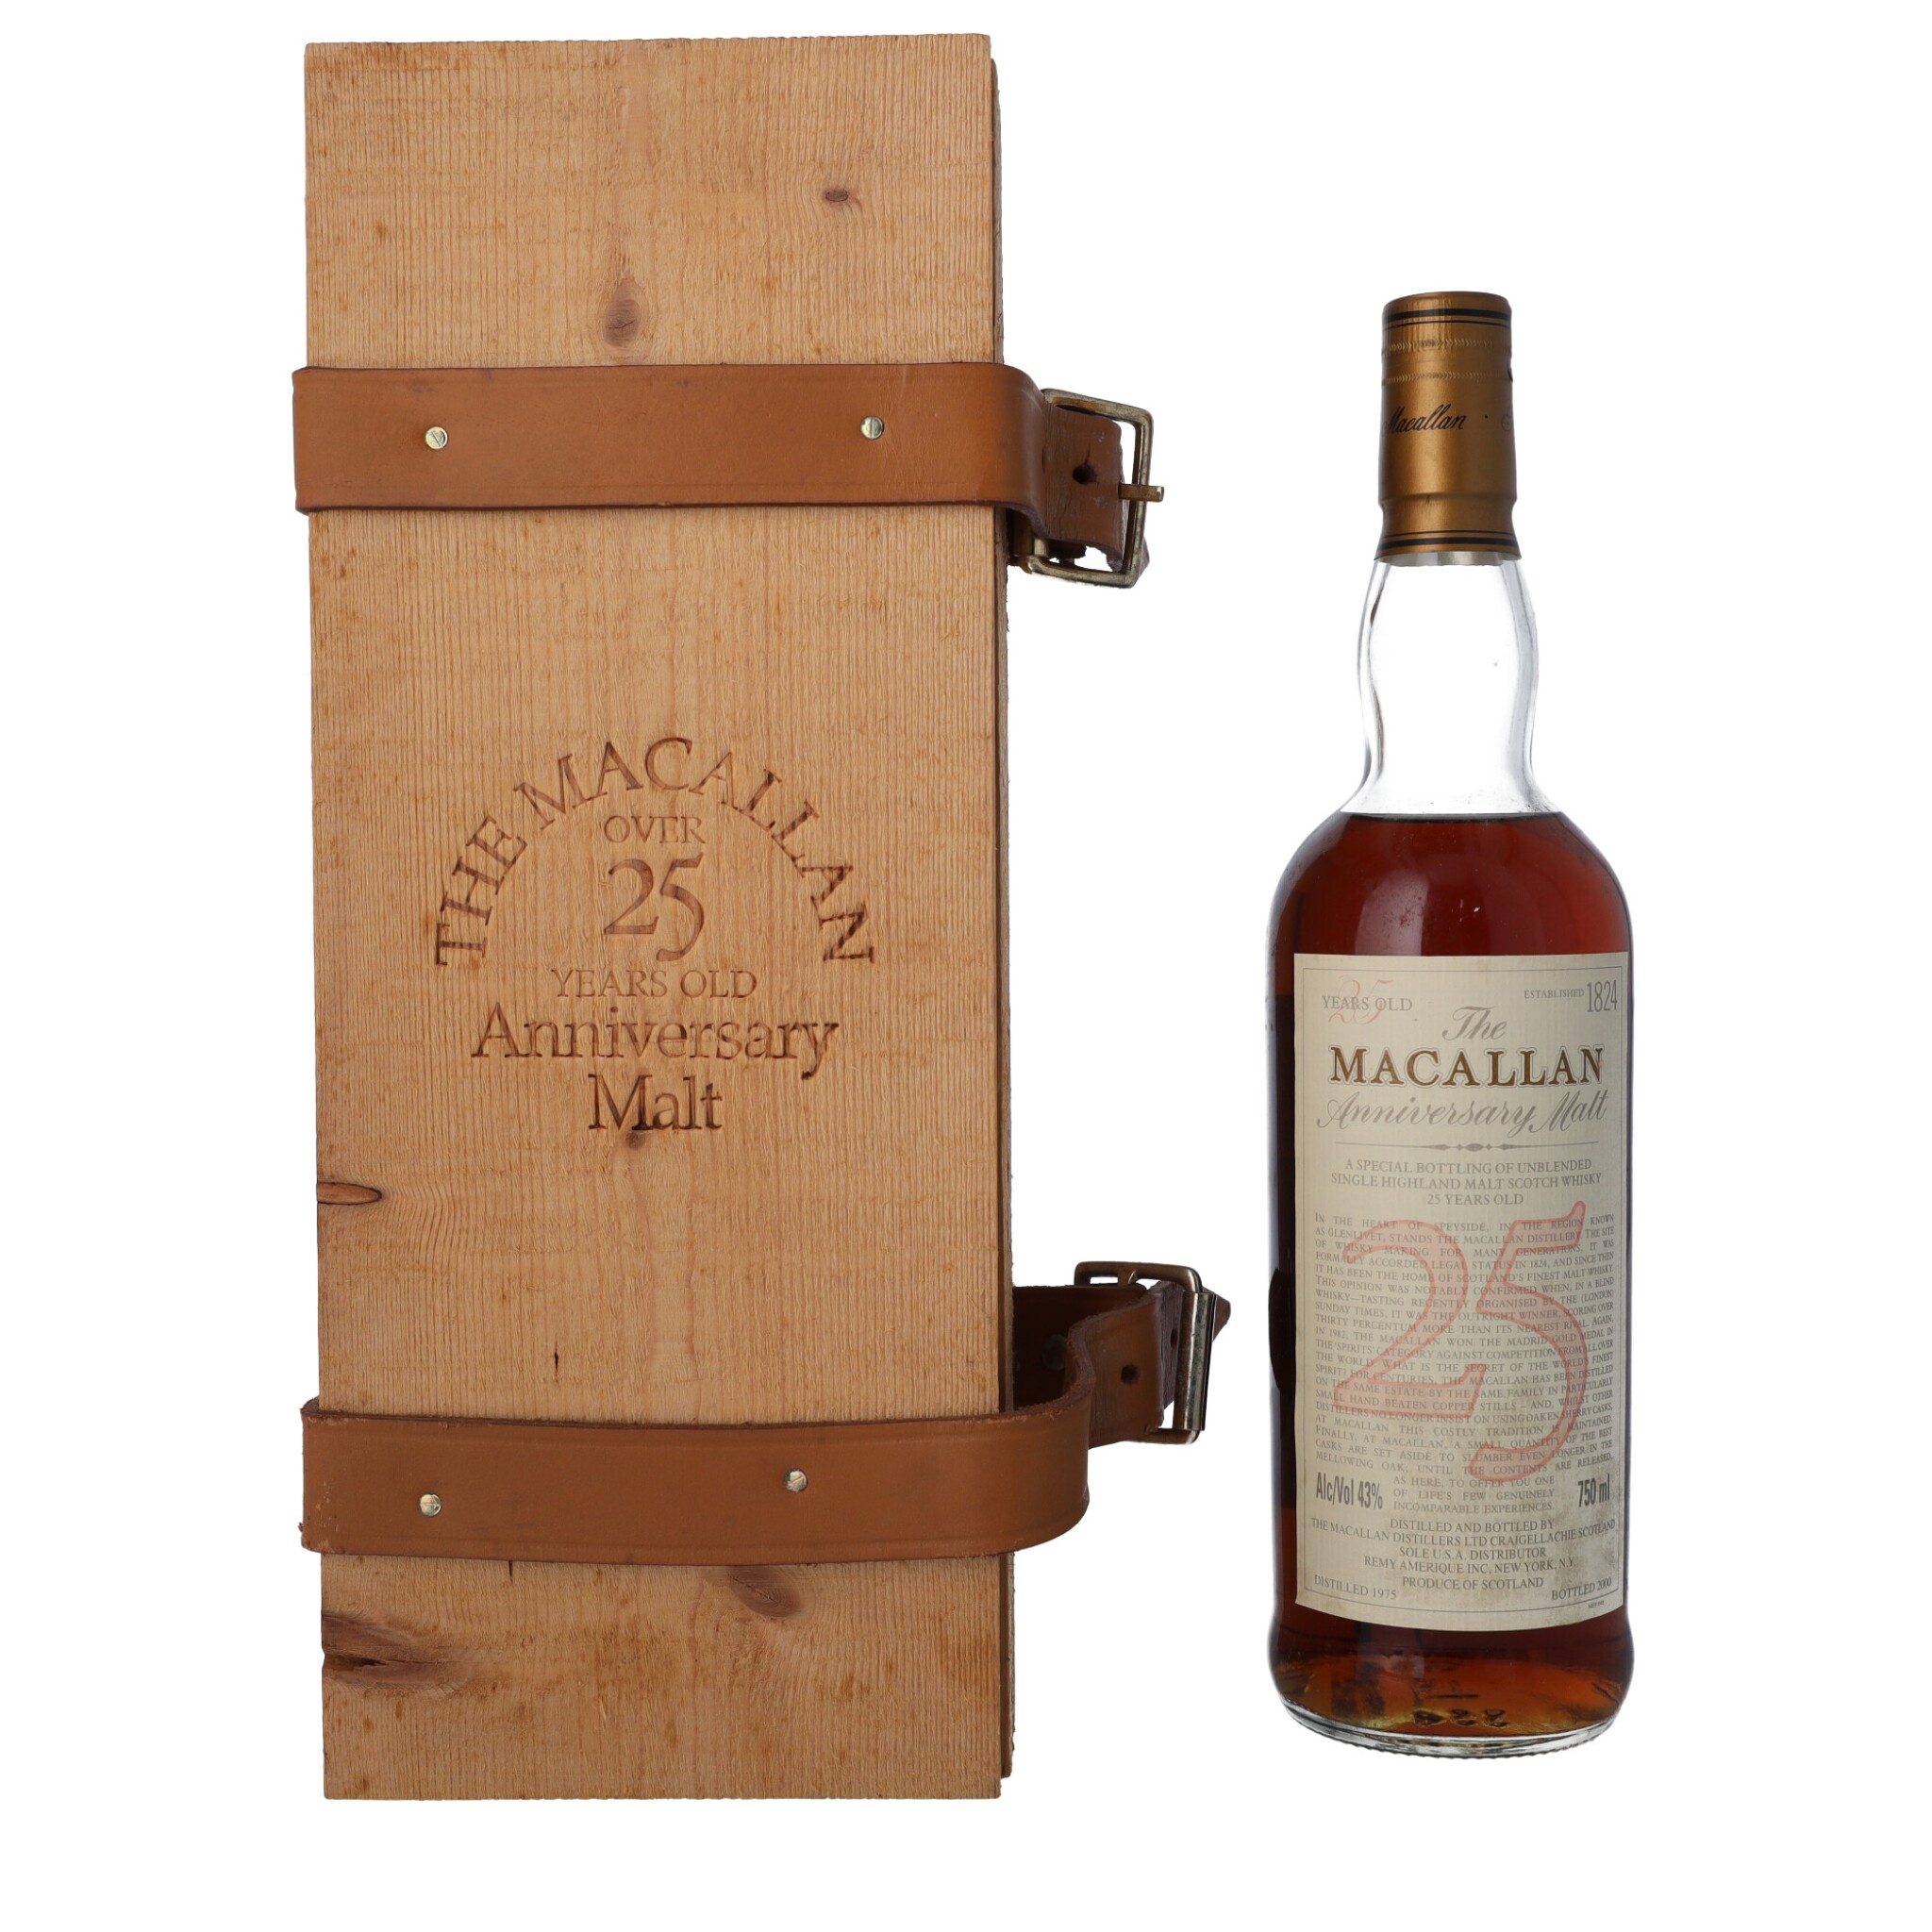 View full screen - View 1 of Lot 14. The Macallan 25 Year Old Anniversary Malt 43.0 abv 1975 (1 BT75).